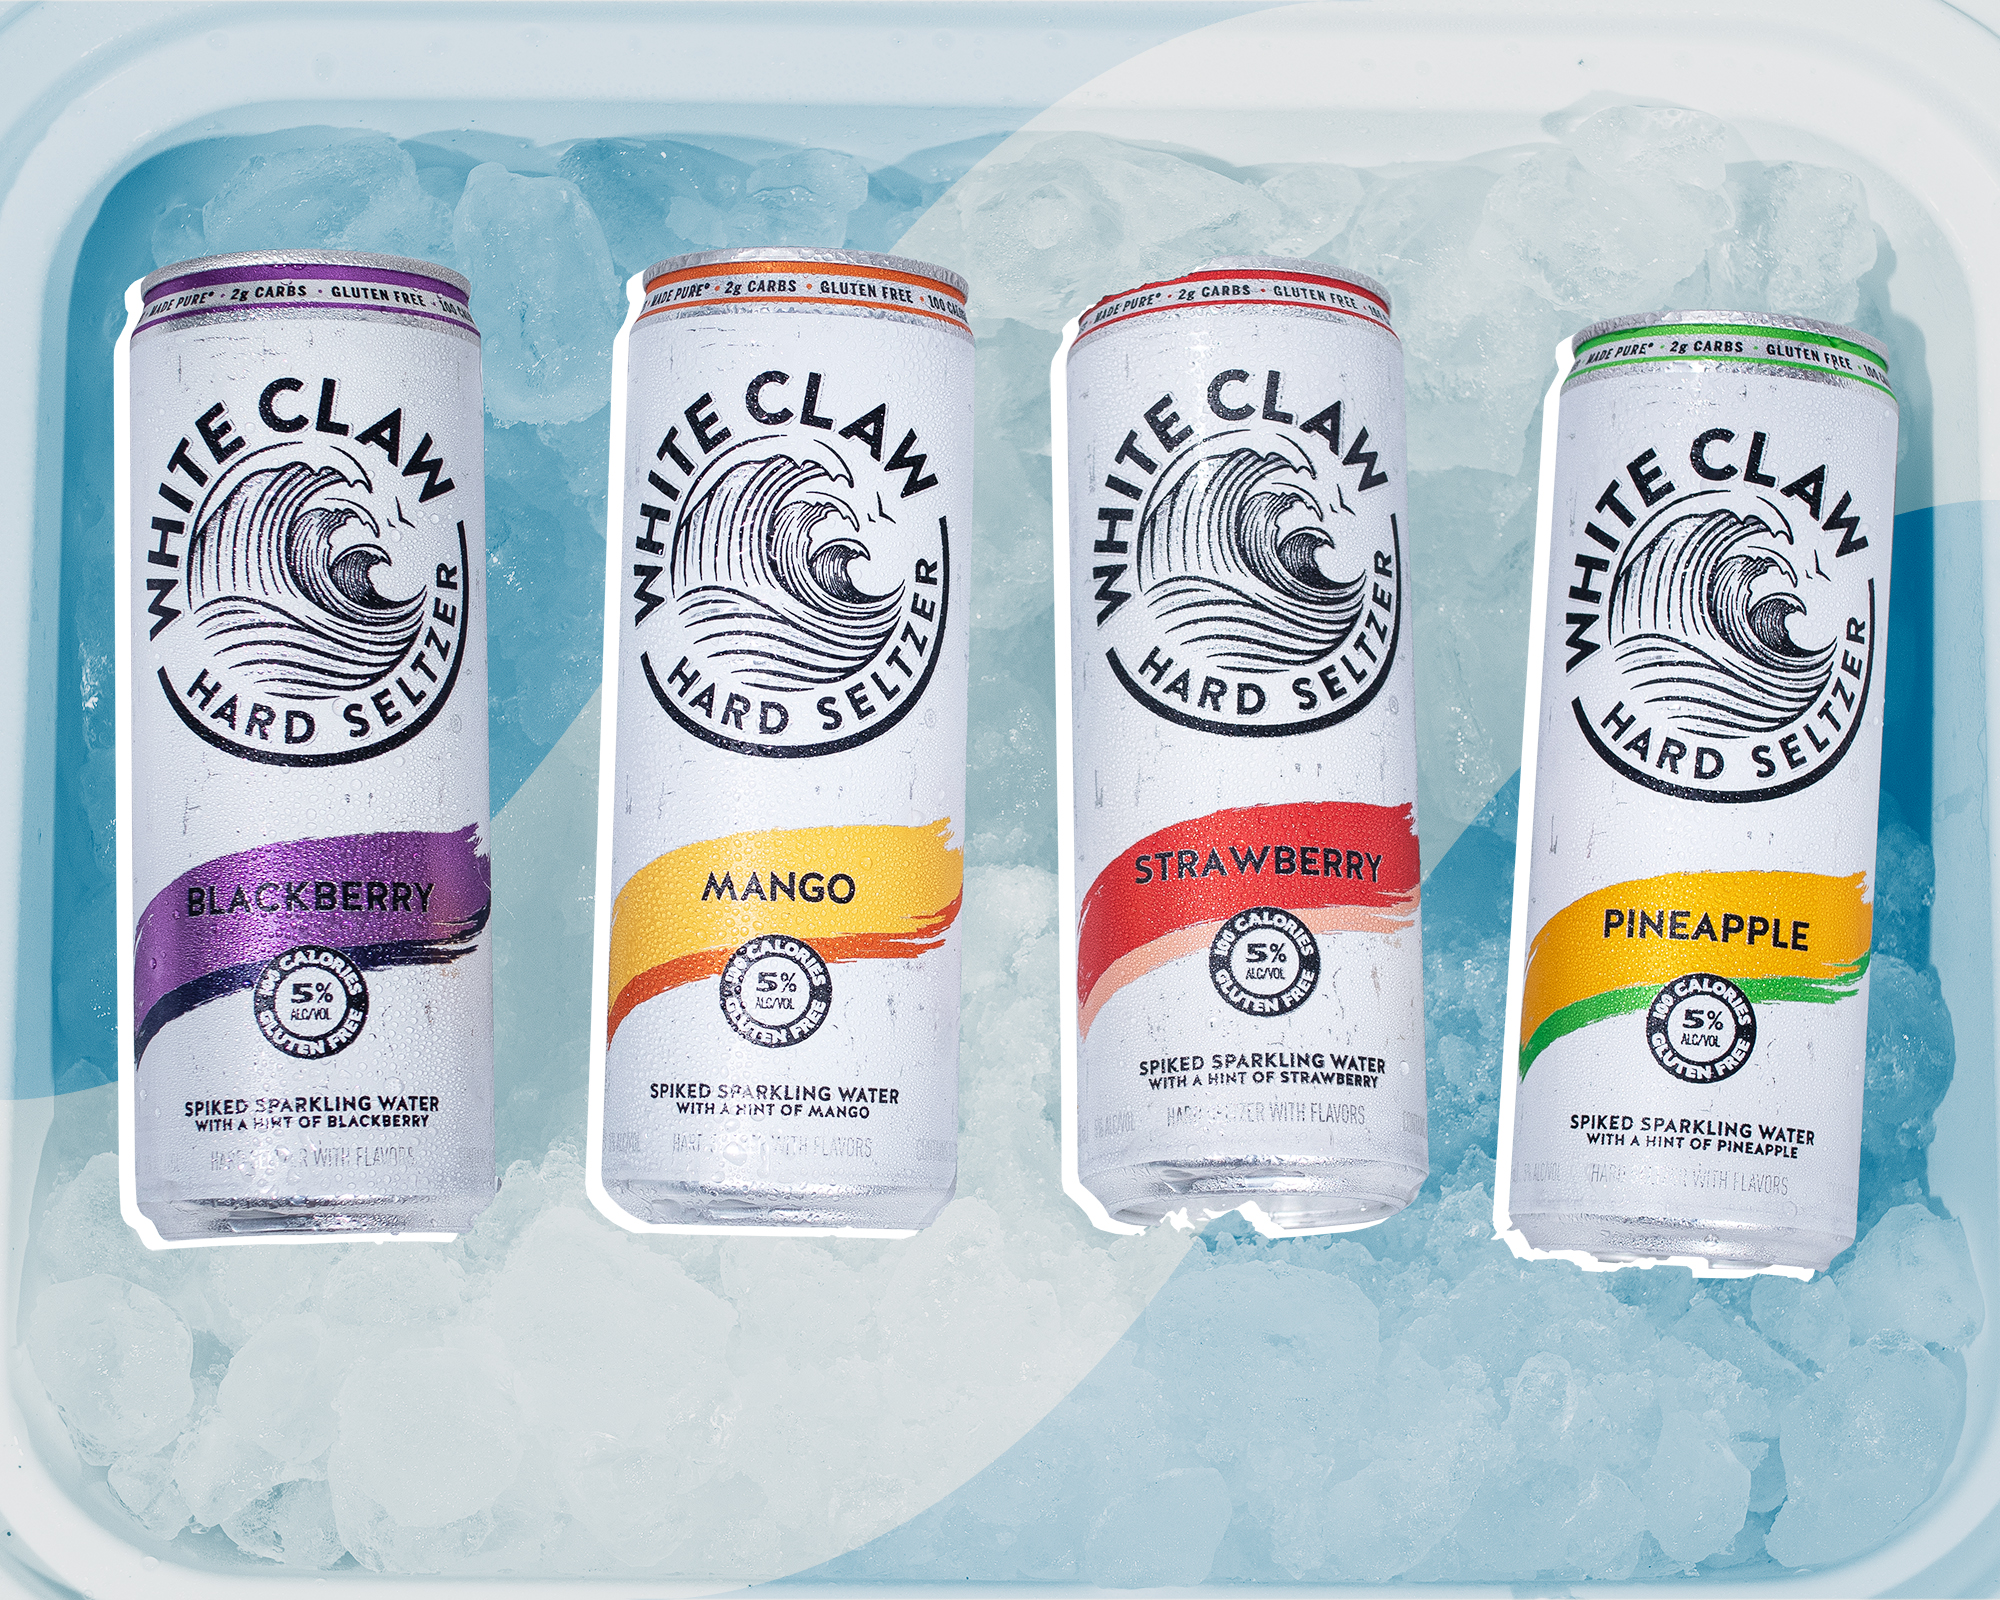 4 cans of White Claw in a cooler full of ice